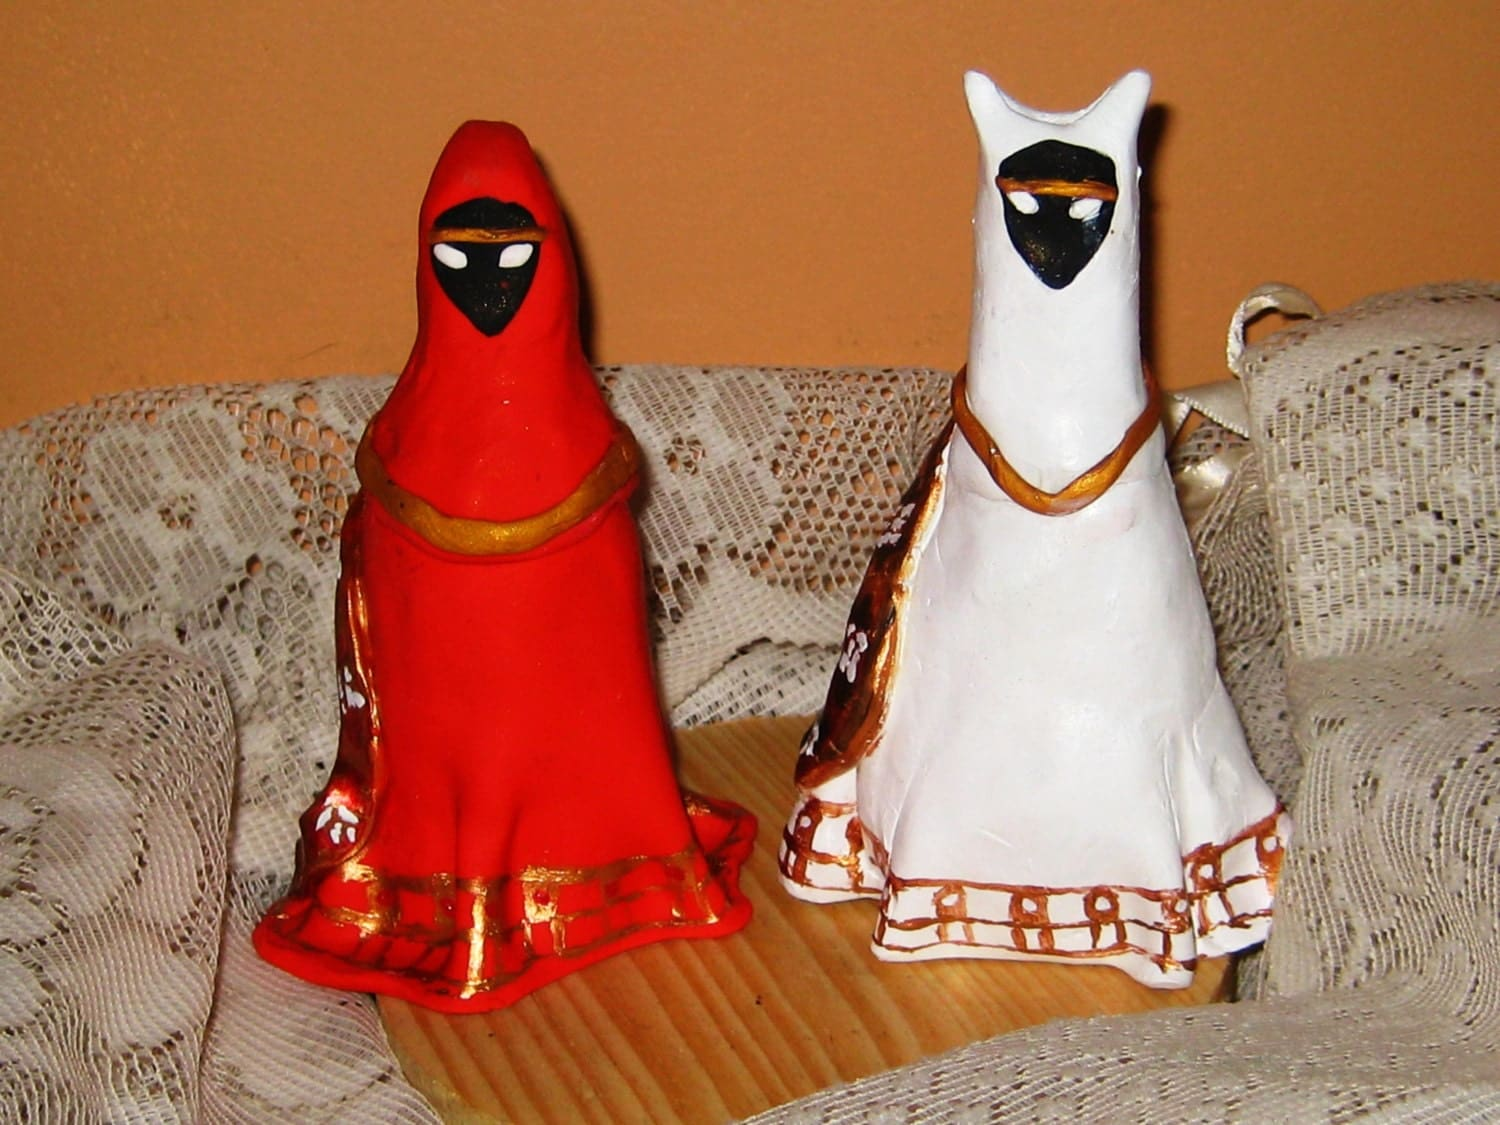 Journey PS3 Video Game Wedding Cake Toppers Geek Wedding